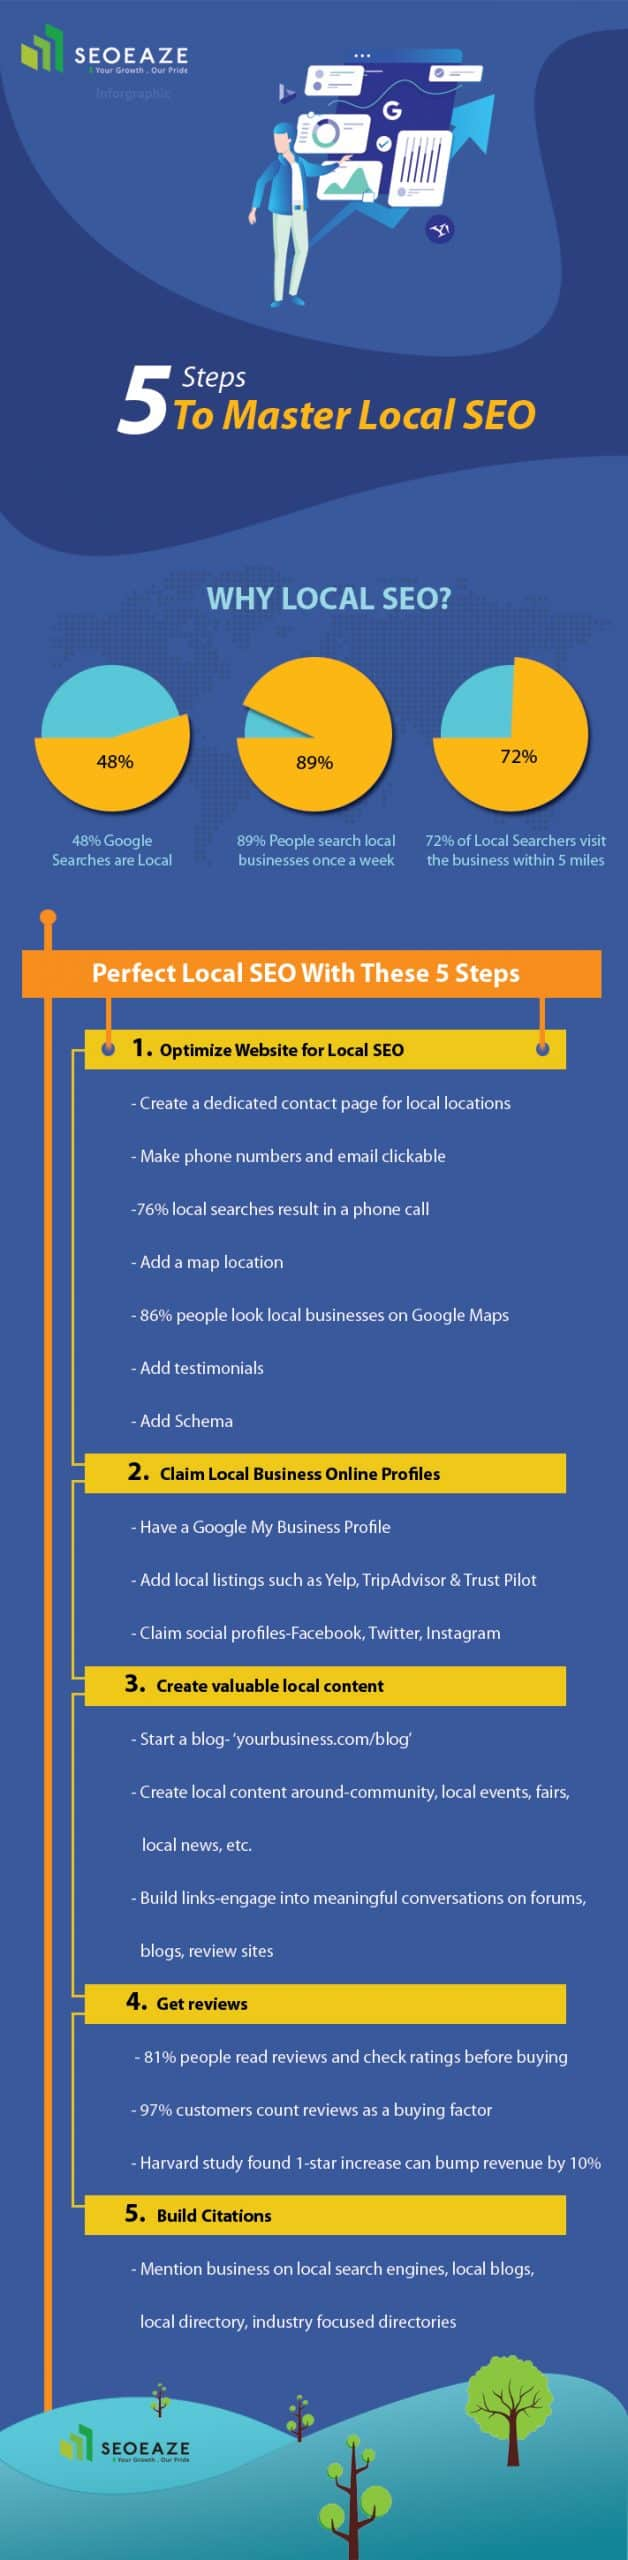 Local SEO Guide Infographic SeoEaze scaled - Local SEO